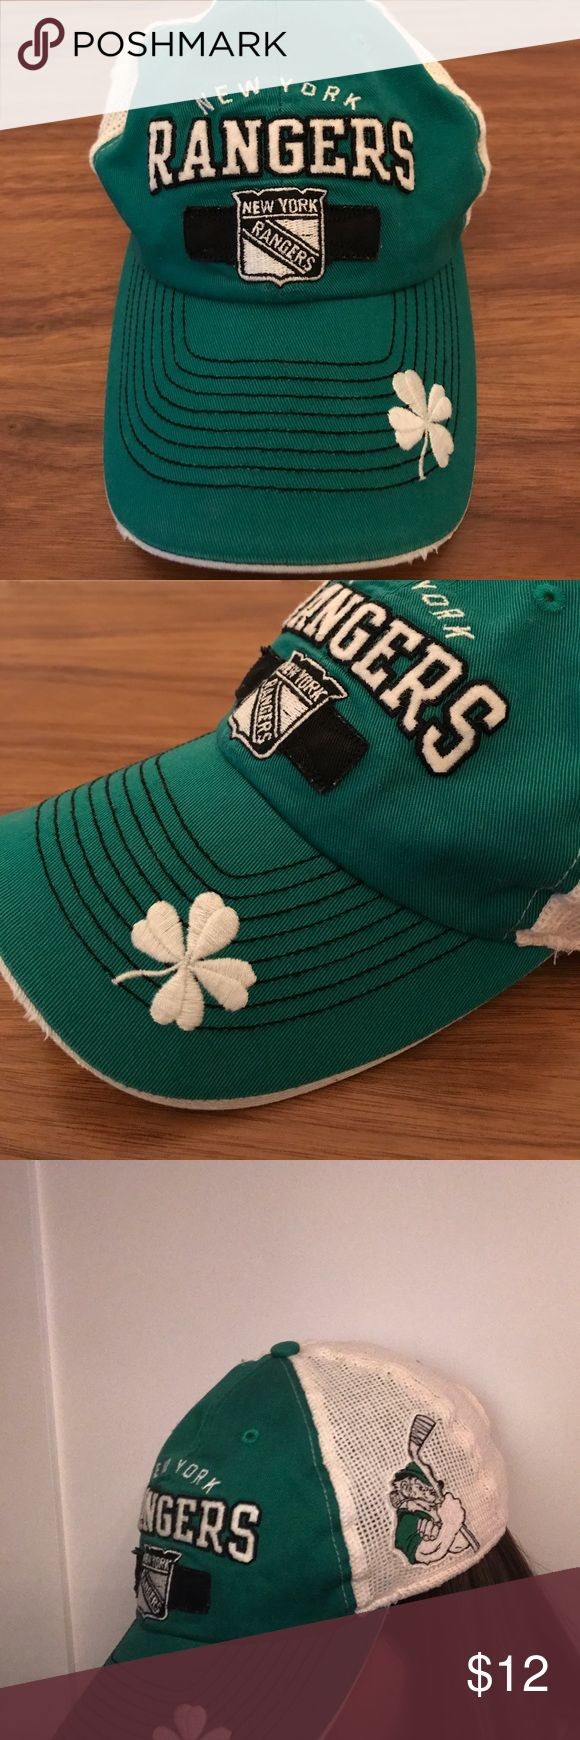 Luck of the Irish New York Rangers hat -womens Luck of the Irish New York Rangers hat -women's • has snap back for size • I cannot recall ever wearing it, it's been in storage for 3 years - EUC, has a natural distressed look • back is a cotton soft mesh • NHL 'Old Time Hockey' line • perfect for the Irish Gal Ranger's fan! NHL Accessories